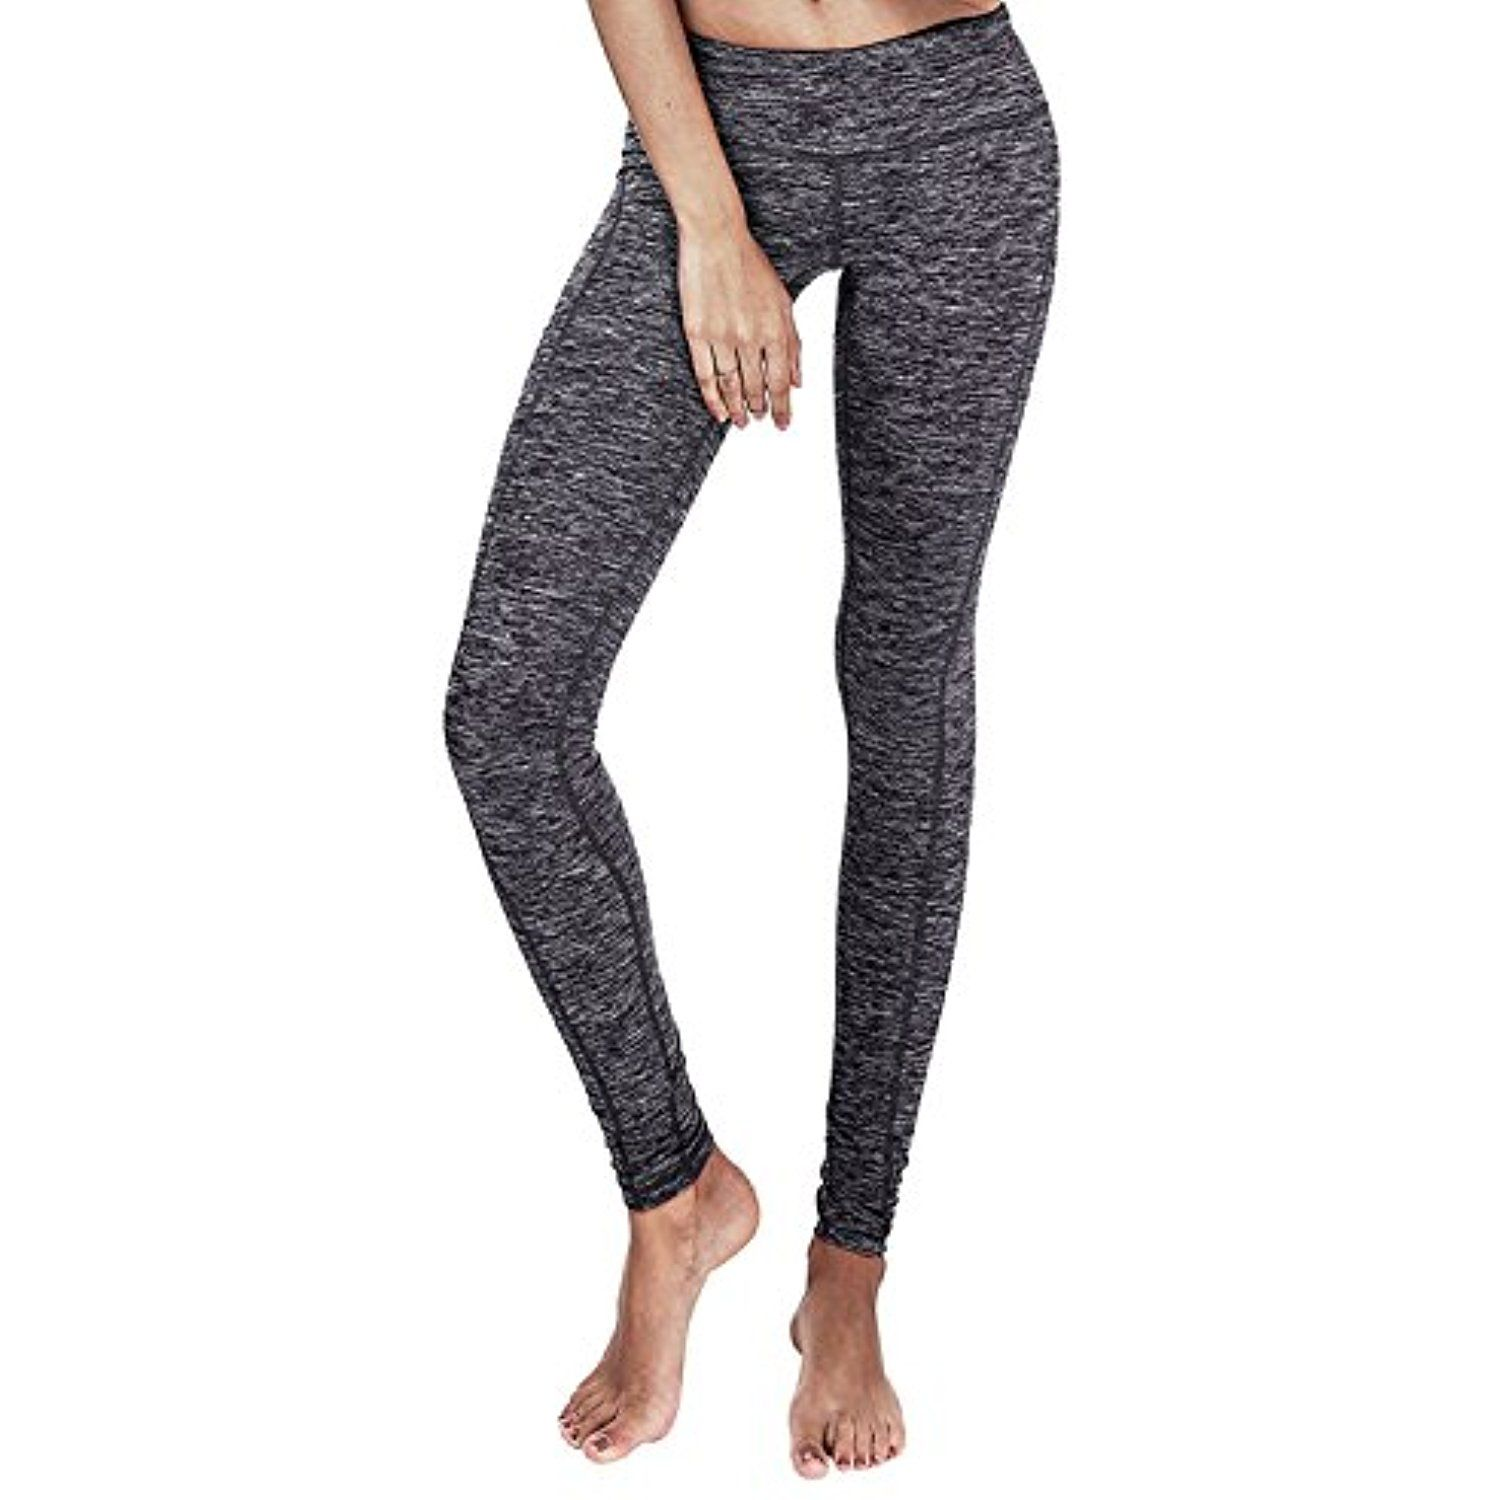 a9bf1efe48dec Yogareflex Women's Side Pocket Fitness Workout Running Yoga Active Legging  Pants *** You can find out more details at the link of the image.